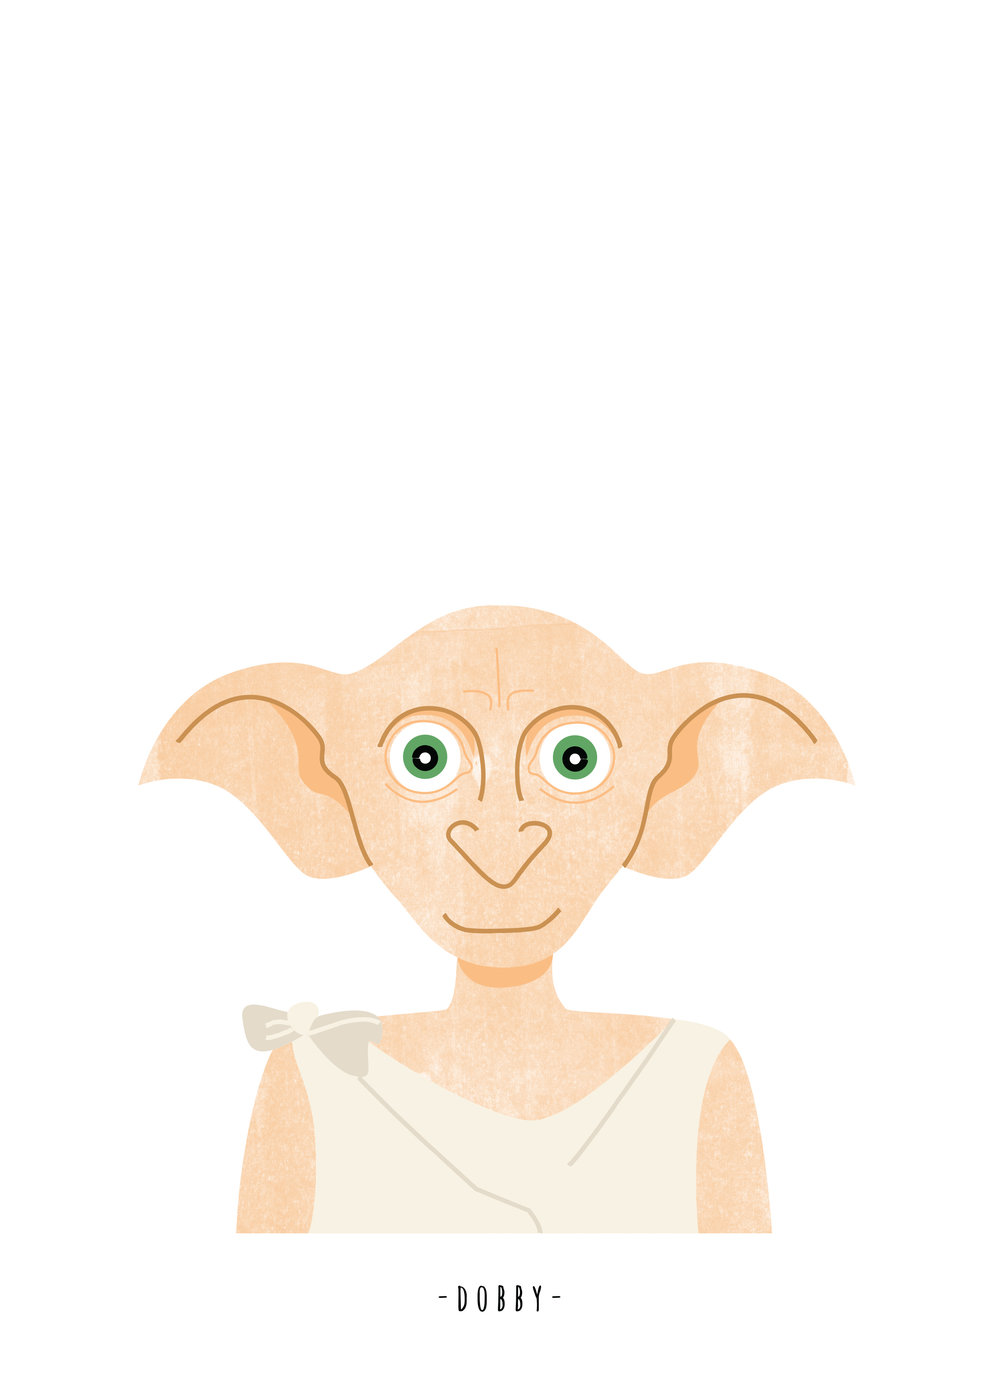 Dobby the house elf custom character illustration by Sara Stuart via Sarasure.